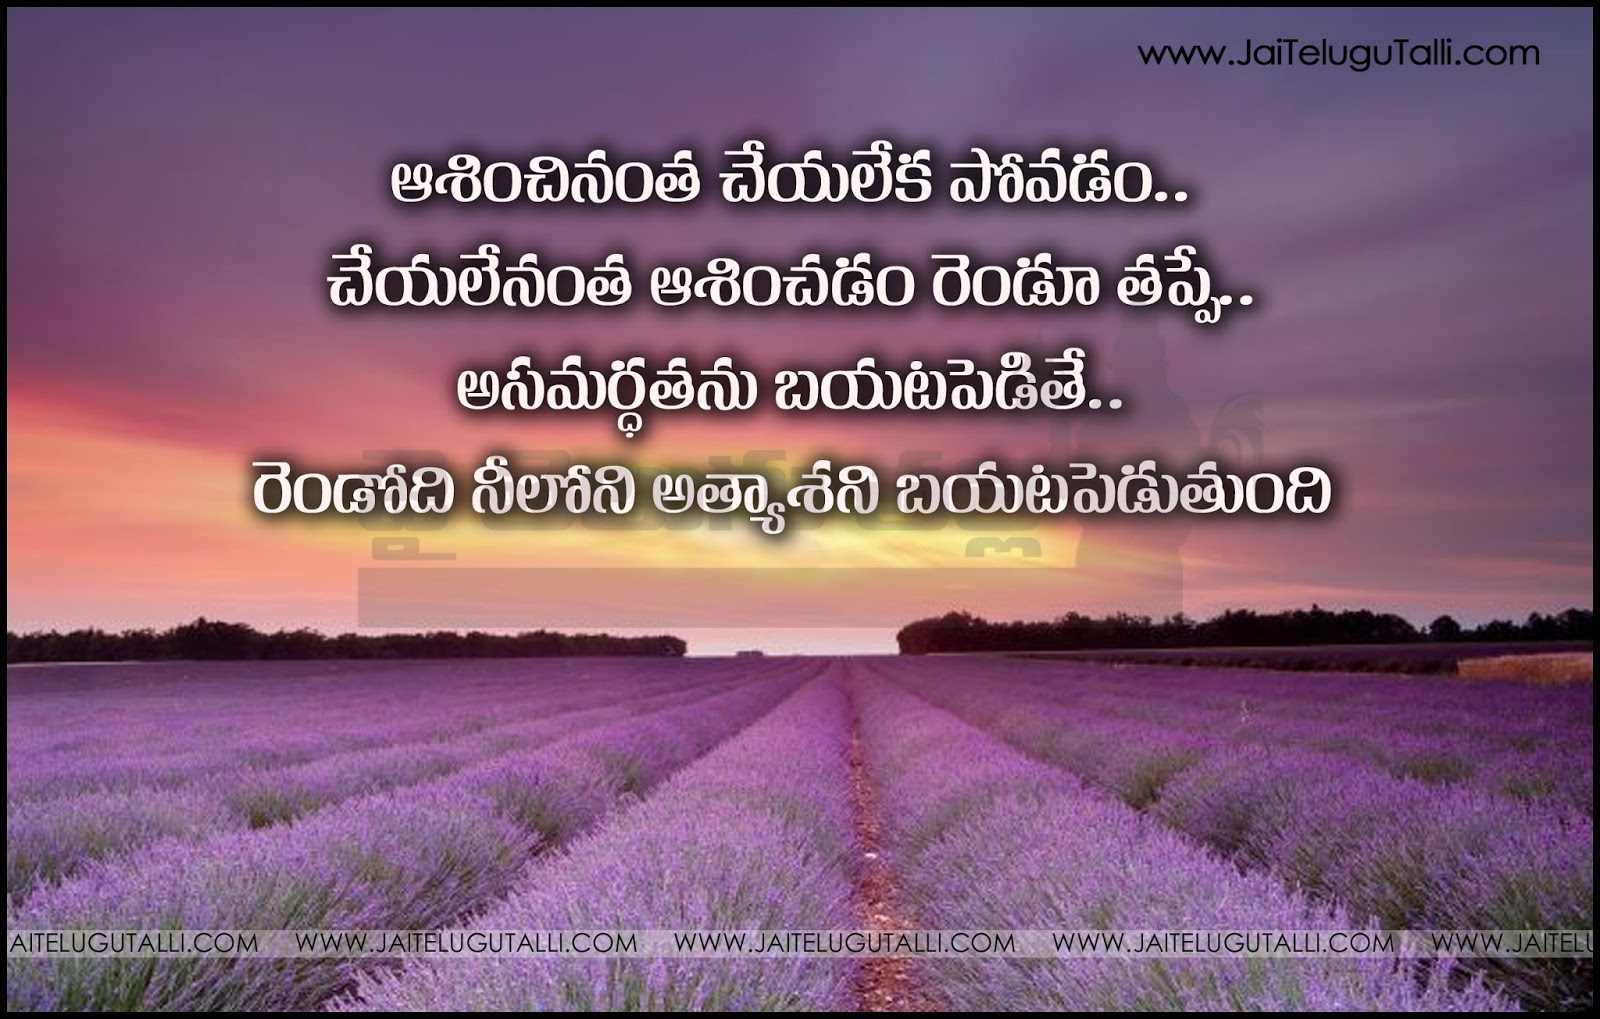 Happy Life Quotes And Sayings Glamorous Telugu Happy Life Quotes Images Motivational Thoughts And Sayings